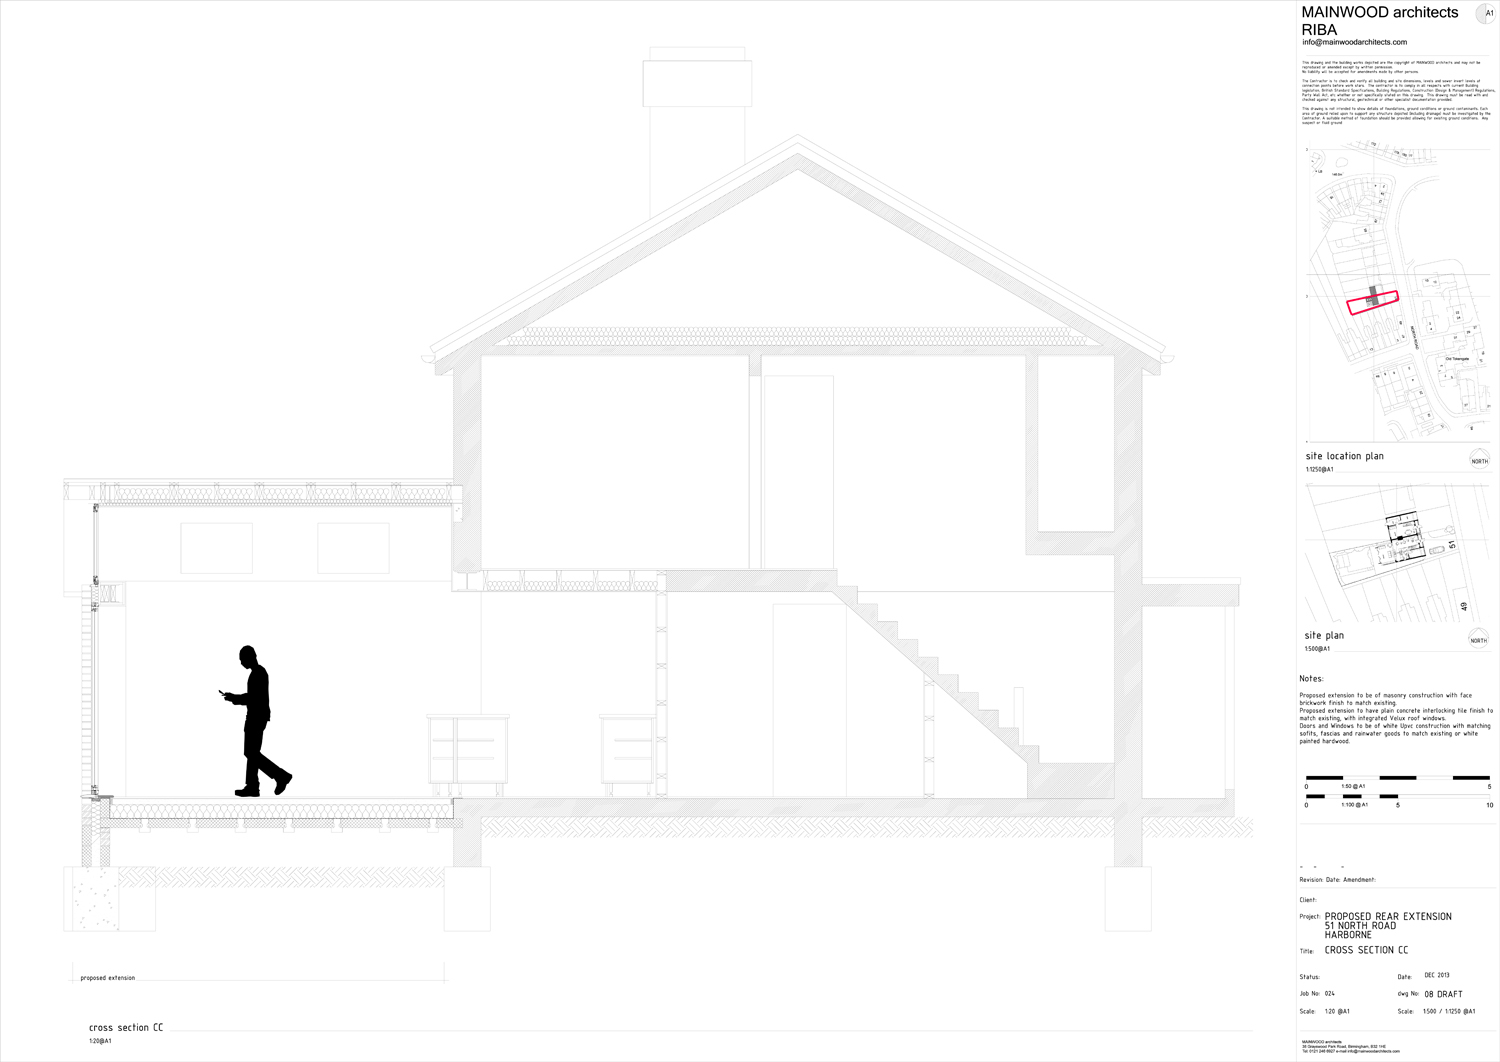 Section through rear extension